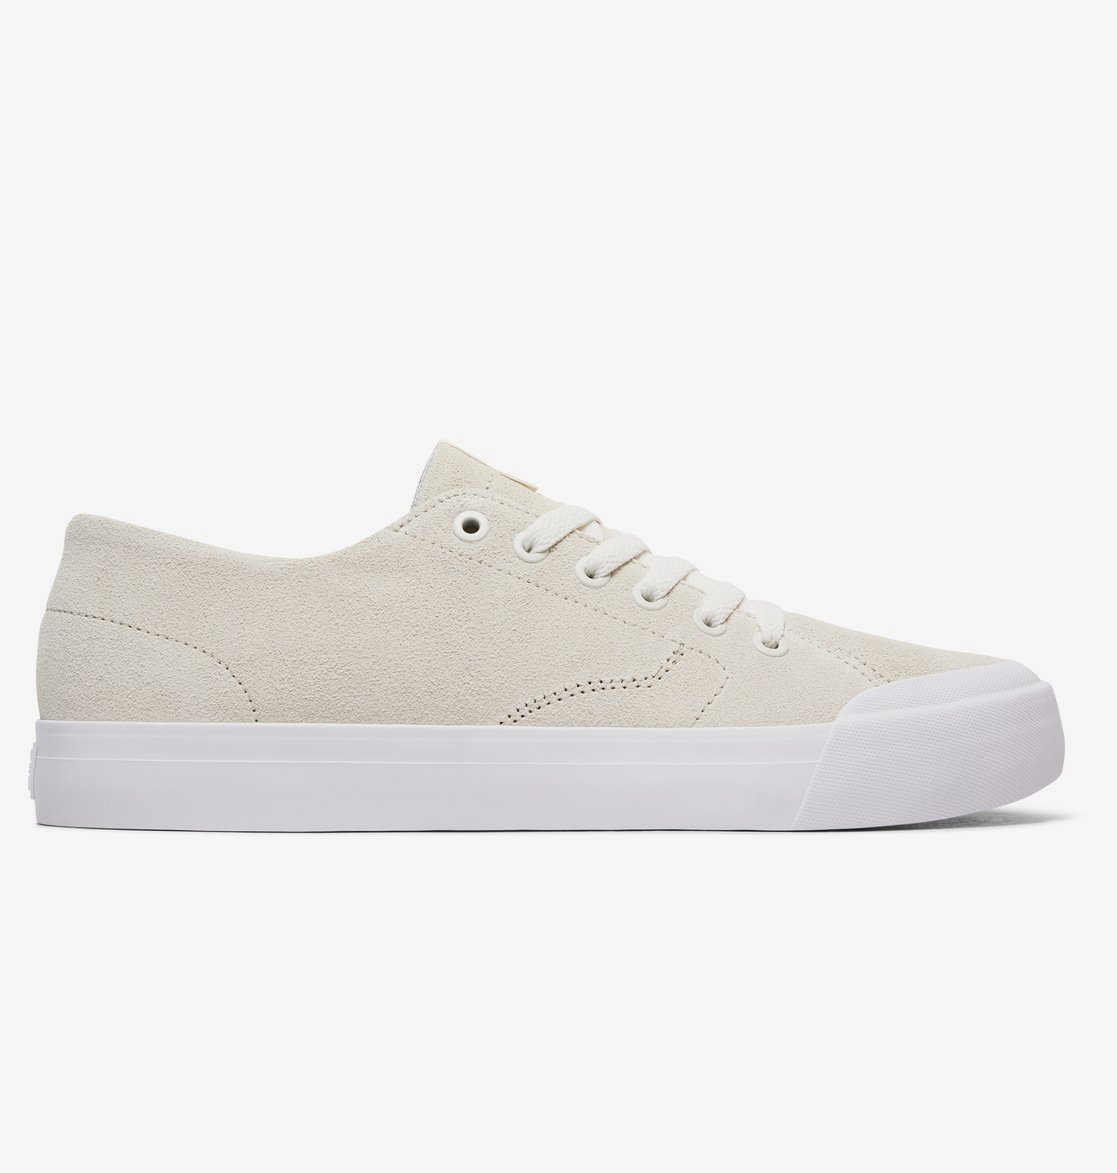 Vulcanized high top skater sneakers